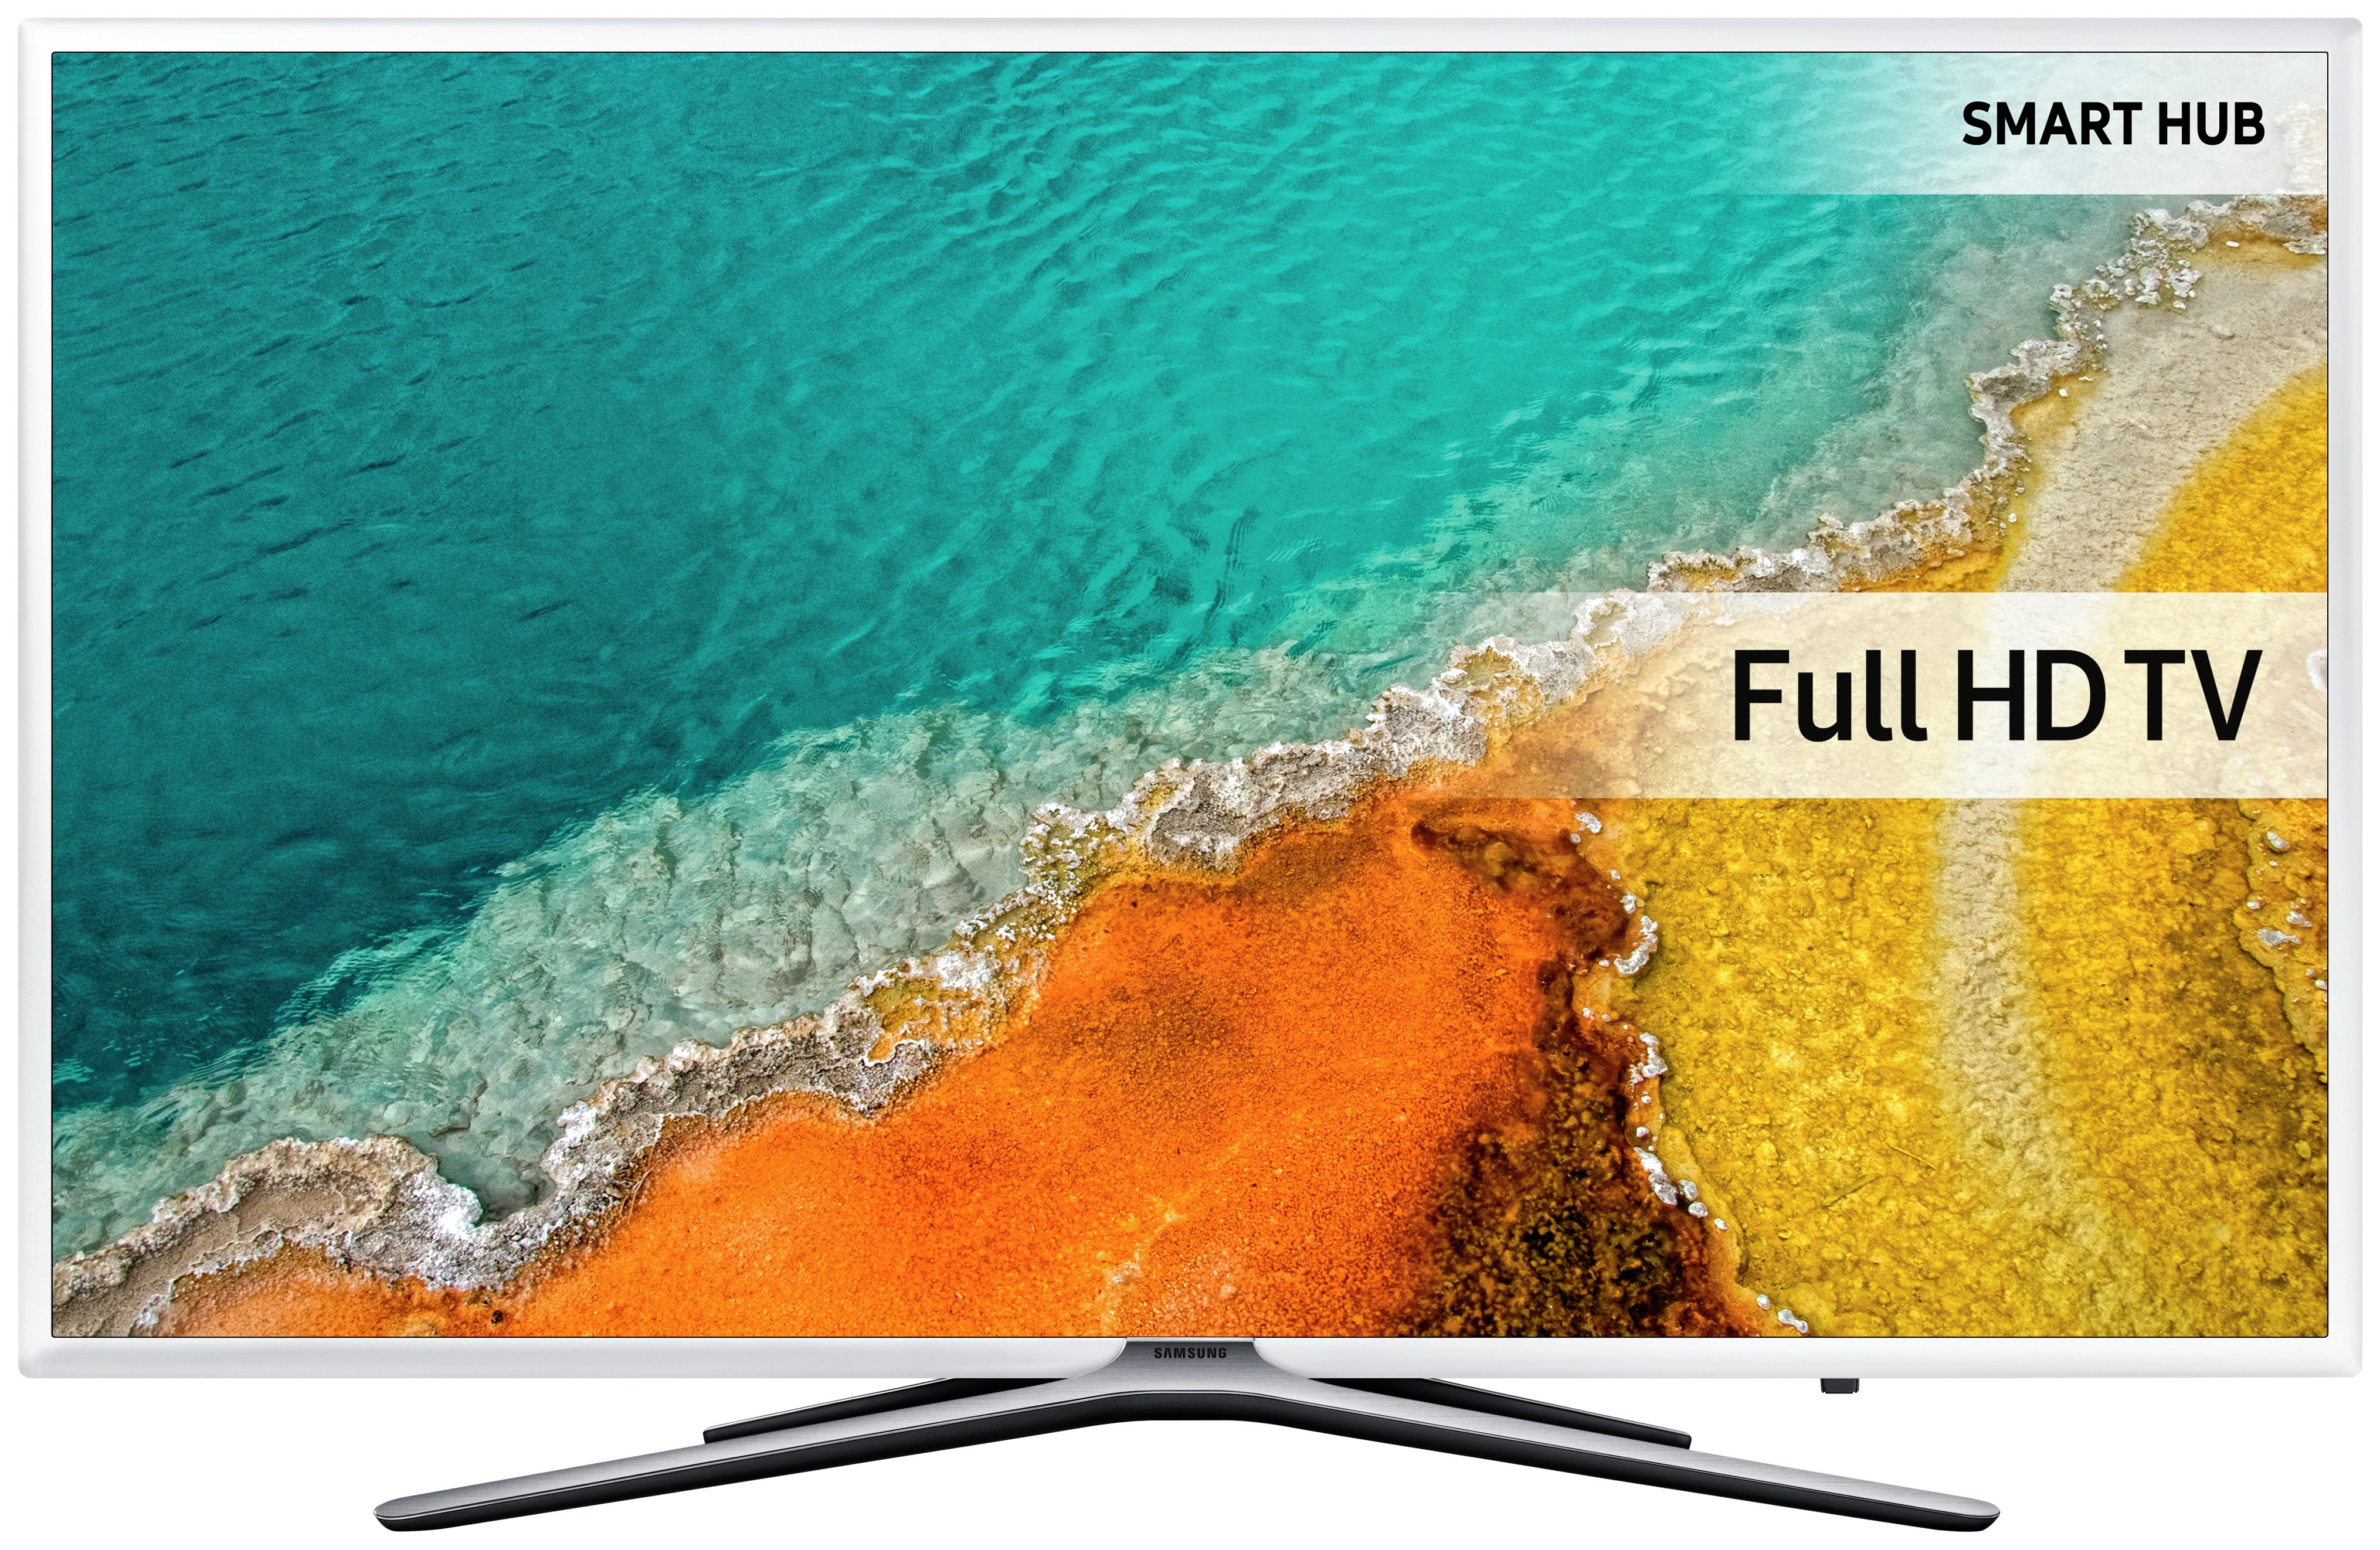 Image of Samsung - 49 Inch - UE49K5510 - Full HD - Smart LED TV.